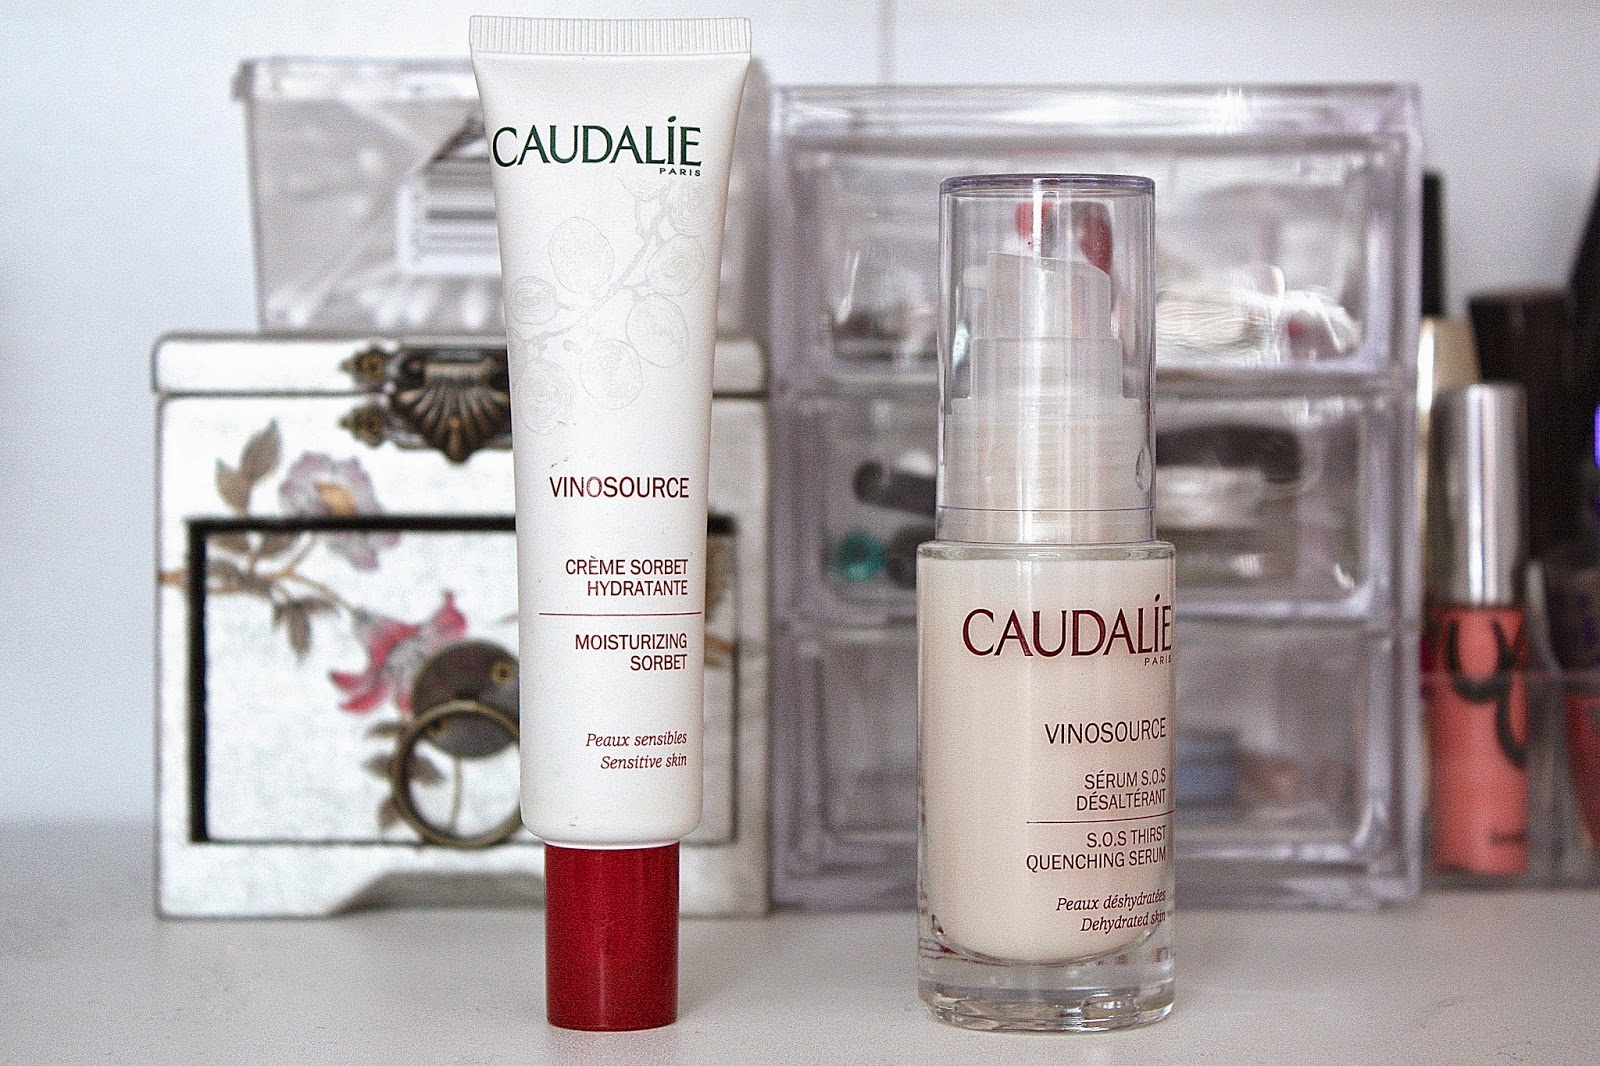 Caudalie Creme Sorbet, Caudalie Vinosource SOS Thirst Quenching Serum